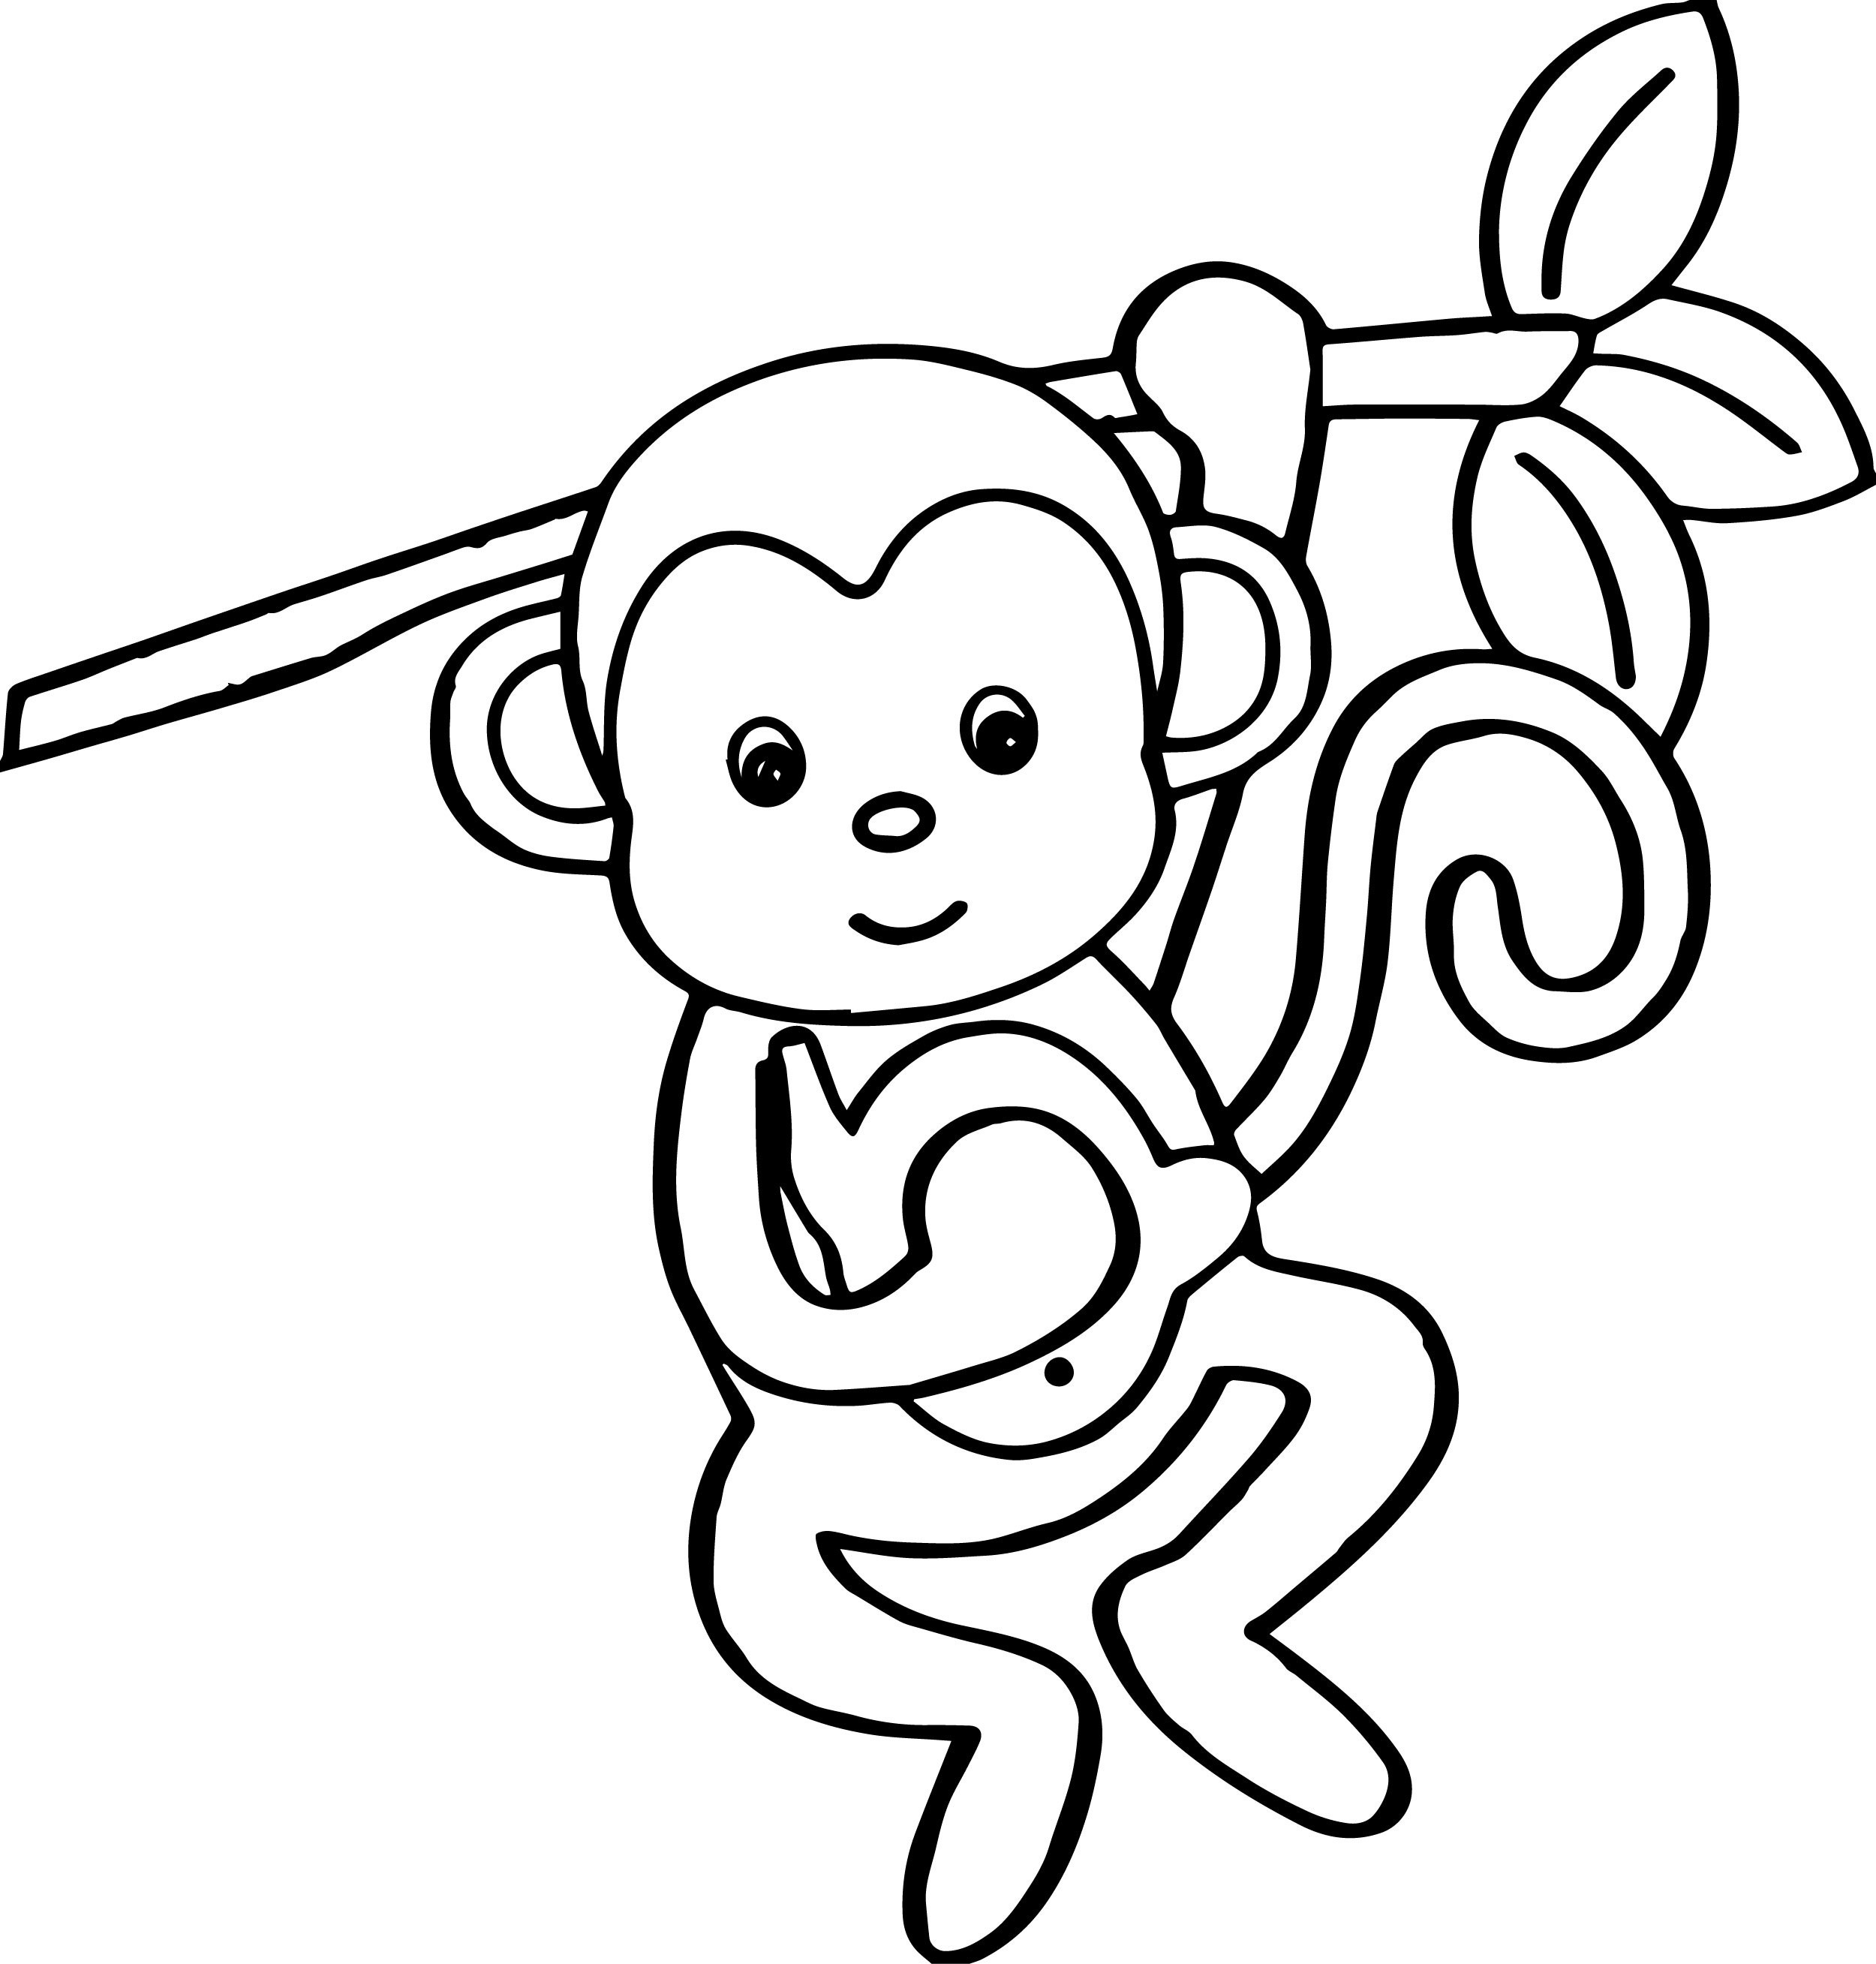 2500x2617 Free Printable Monkey Coloring Pages For Kids Best Page Wagashiya